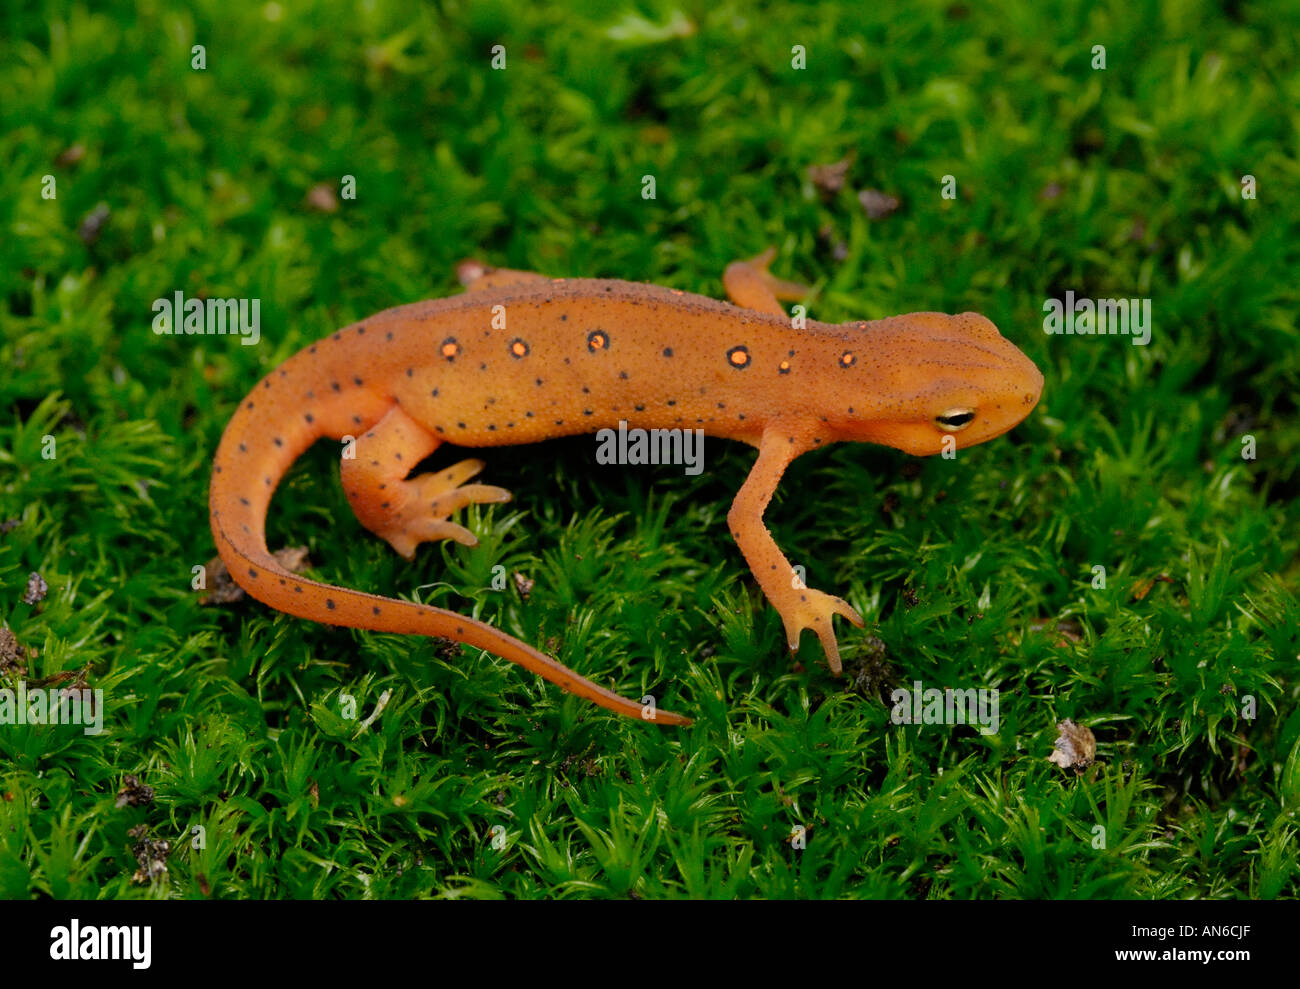 Orientale (o 'red-spotted') newt Notophthalmus viridescens capretti in rosso eft stage Immagini Stock